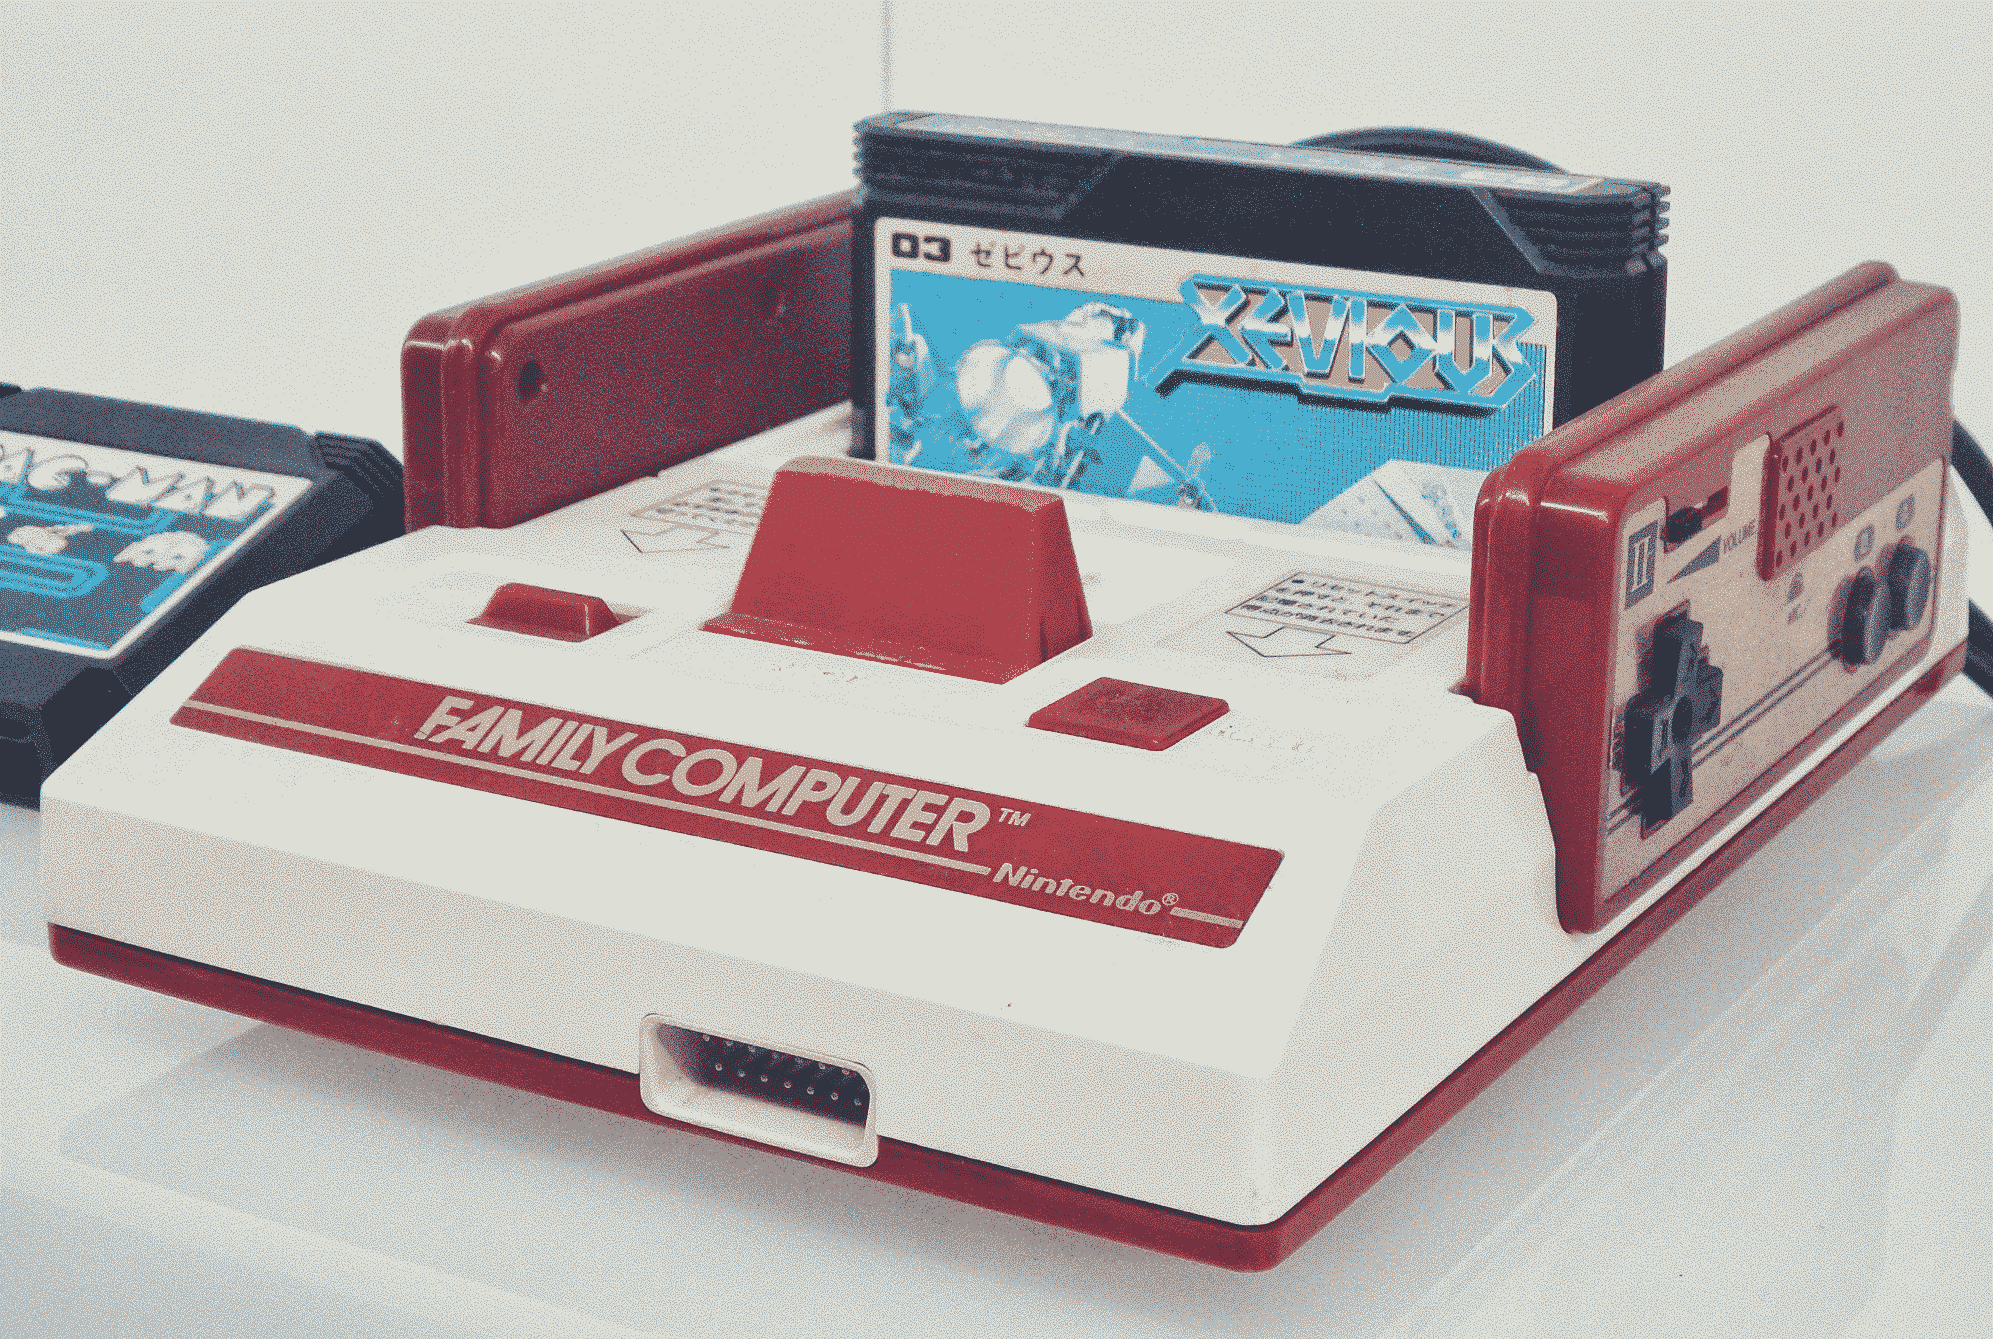 5 things to do with the grandchildren this Easter: Retro game